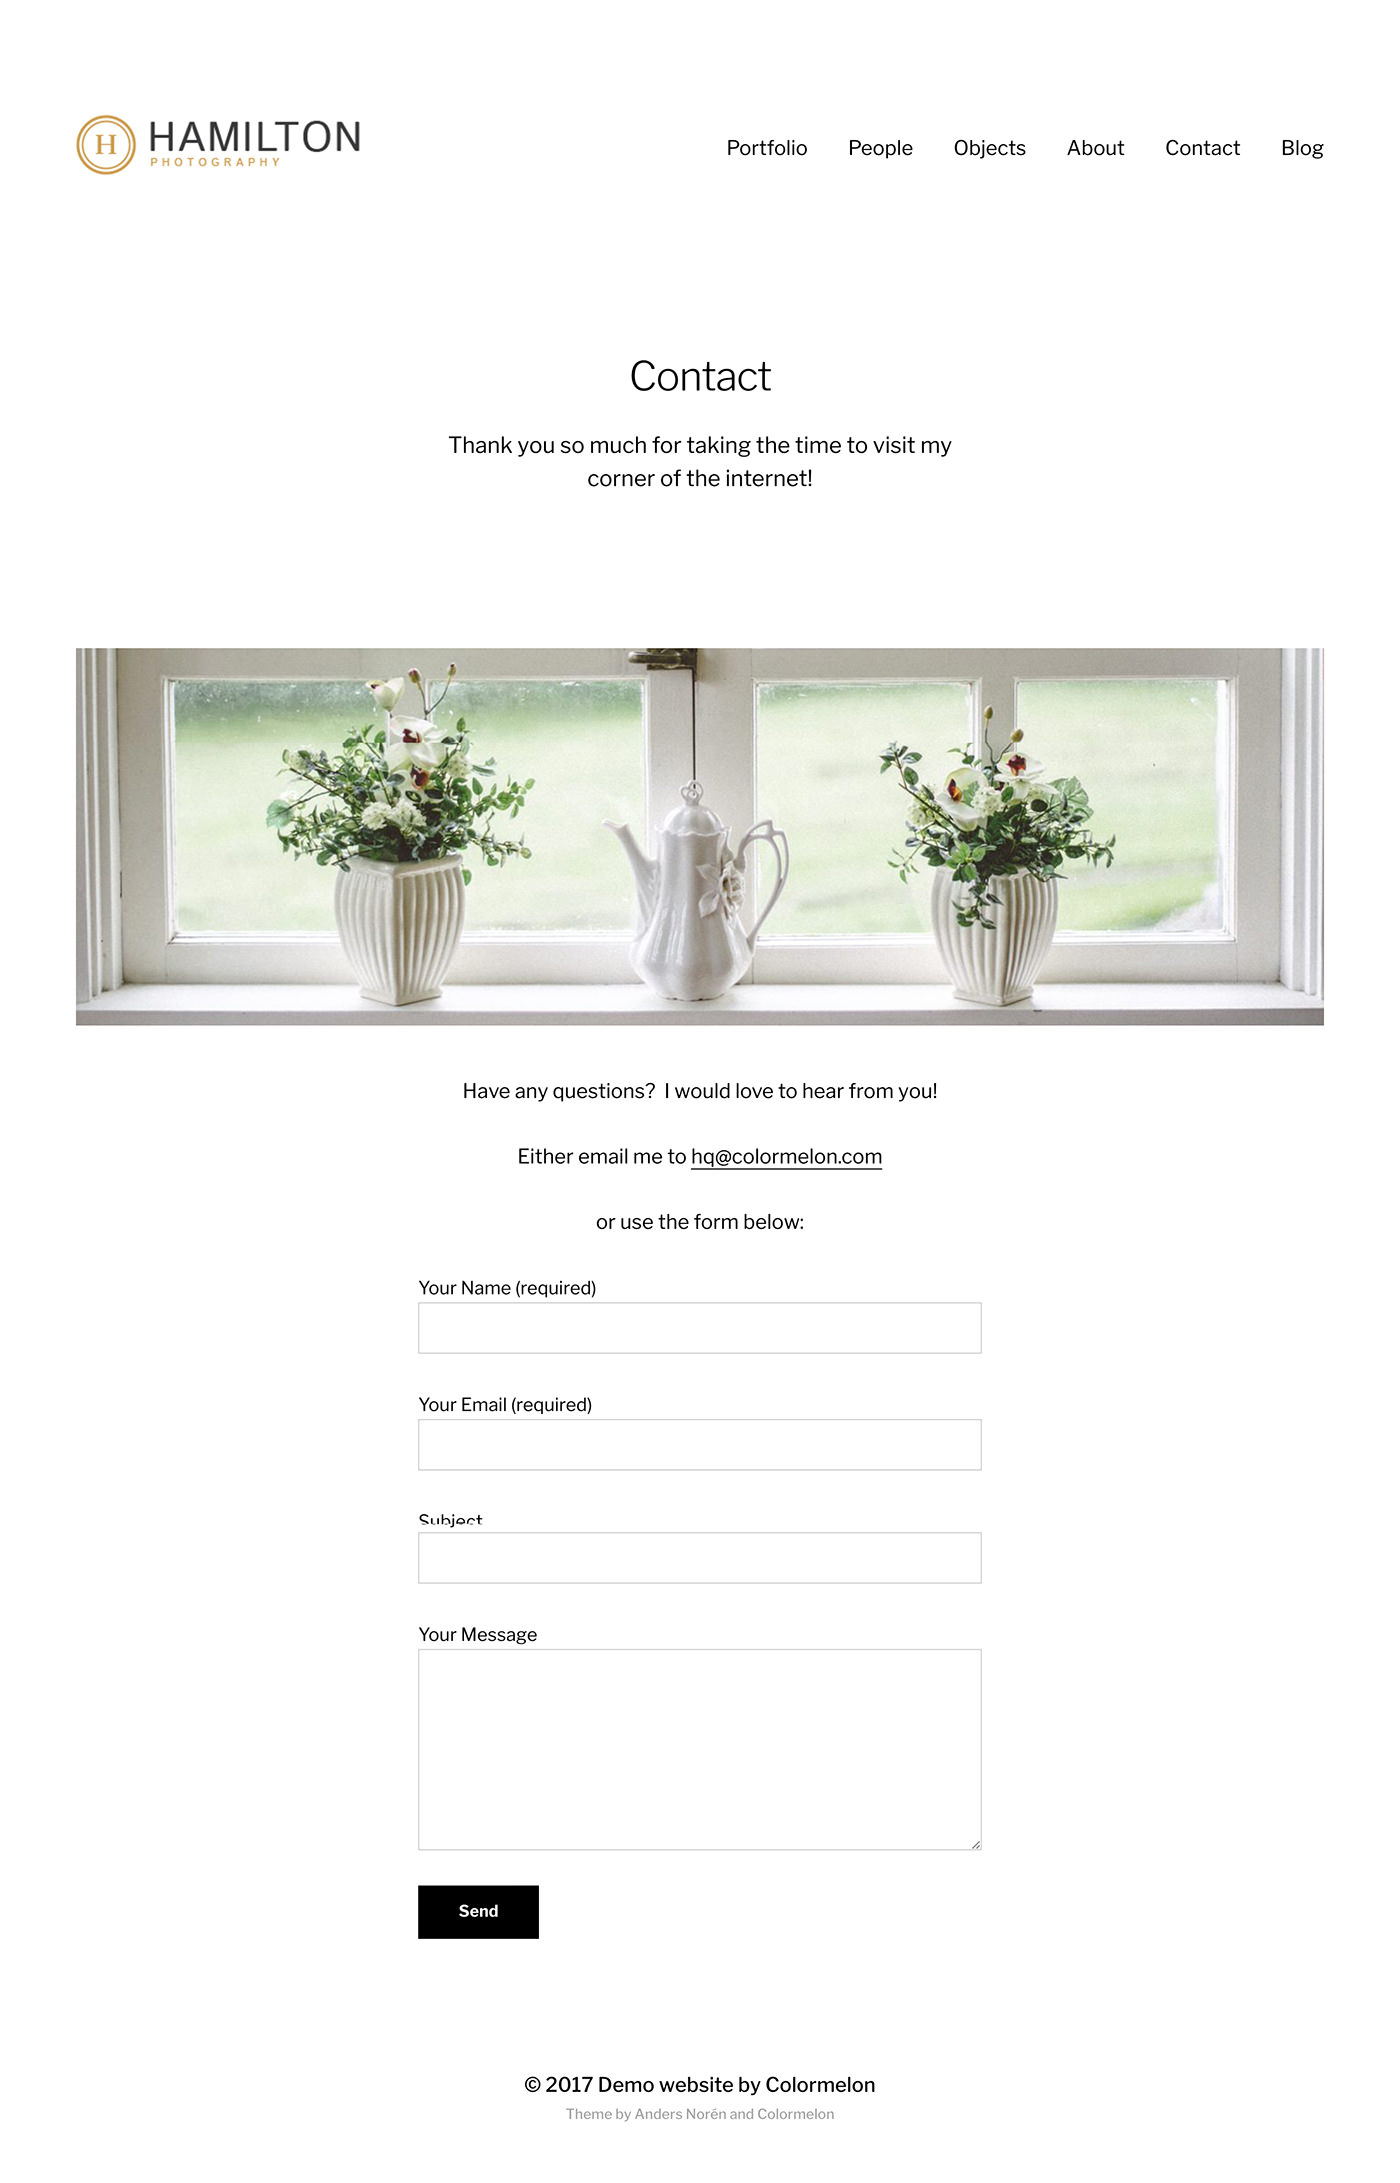 Contact page example for our free portfolio website called Minimalist Portfolio